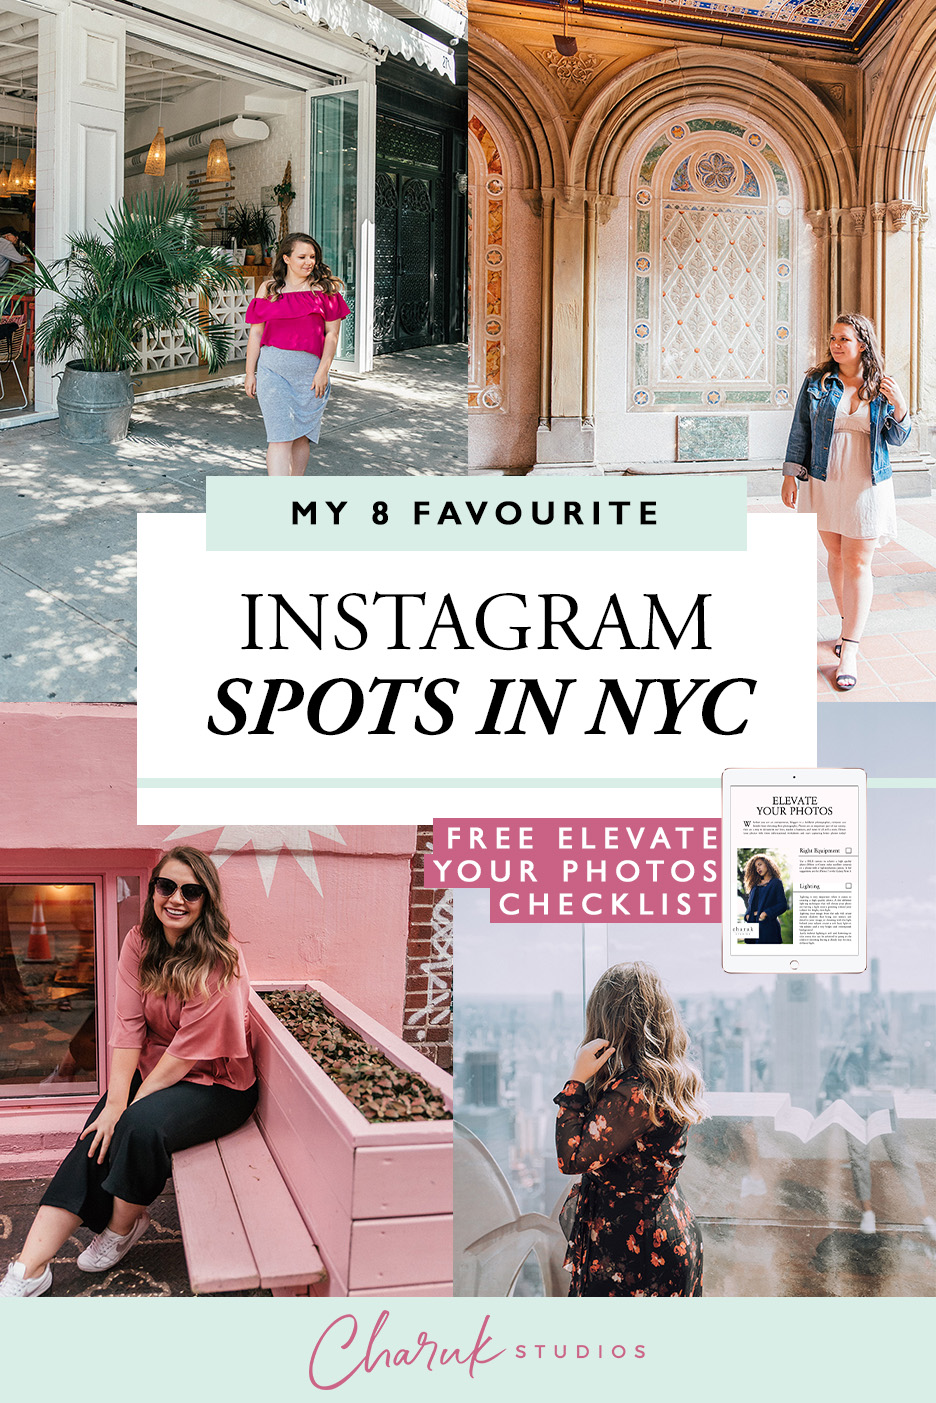 My 8 Favourite Instagram Spots in NYC by Charuk Studios